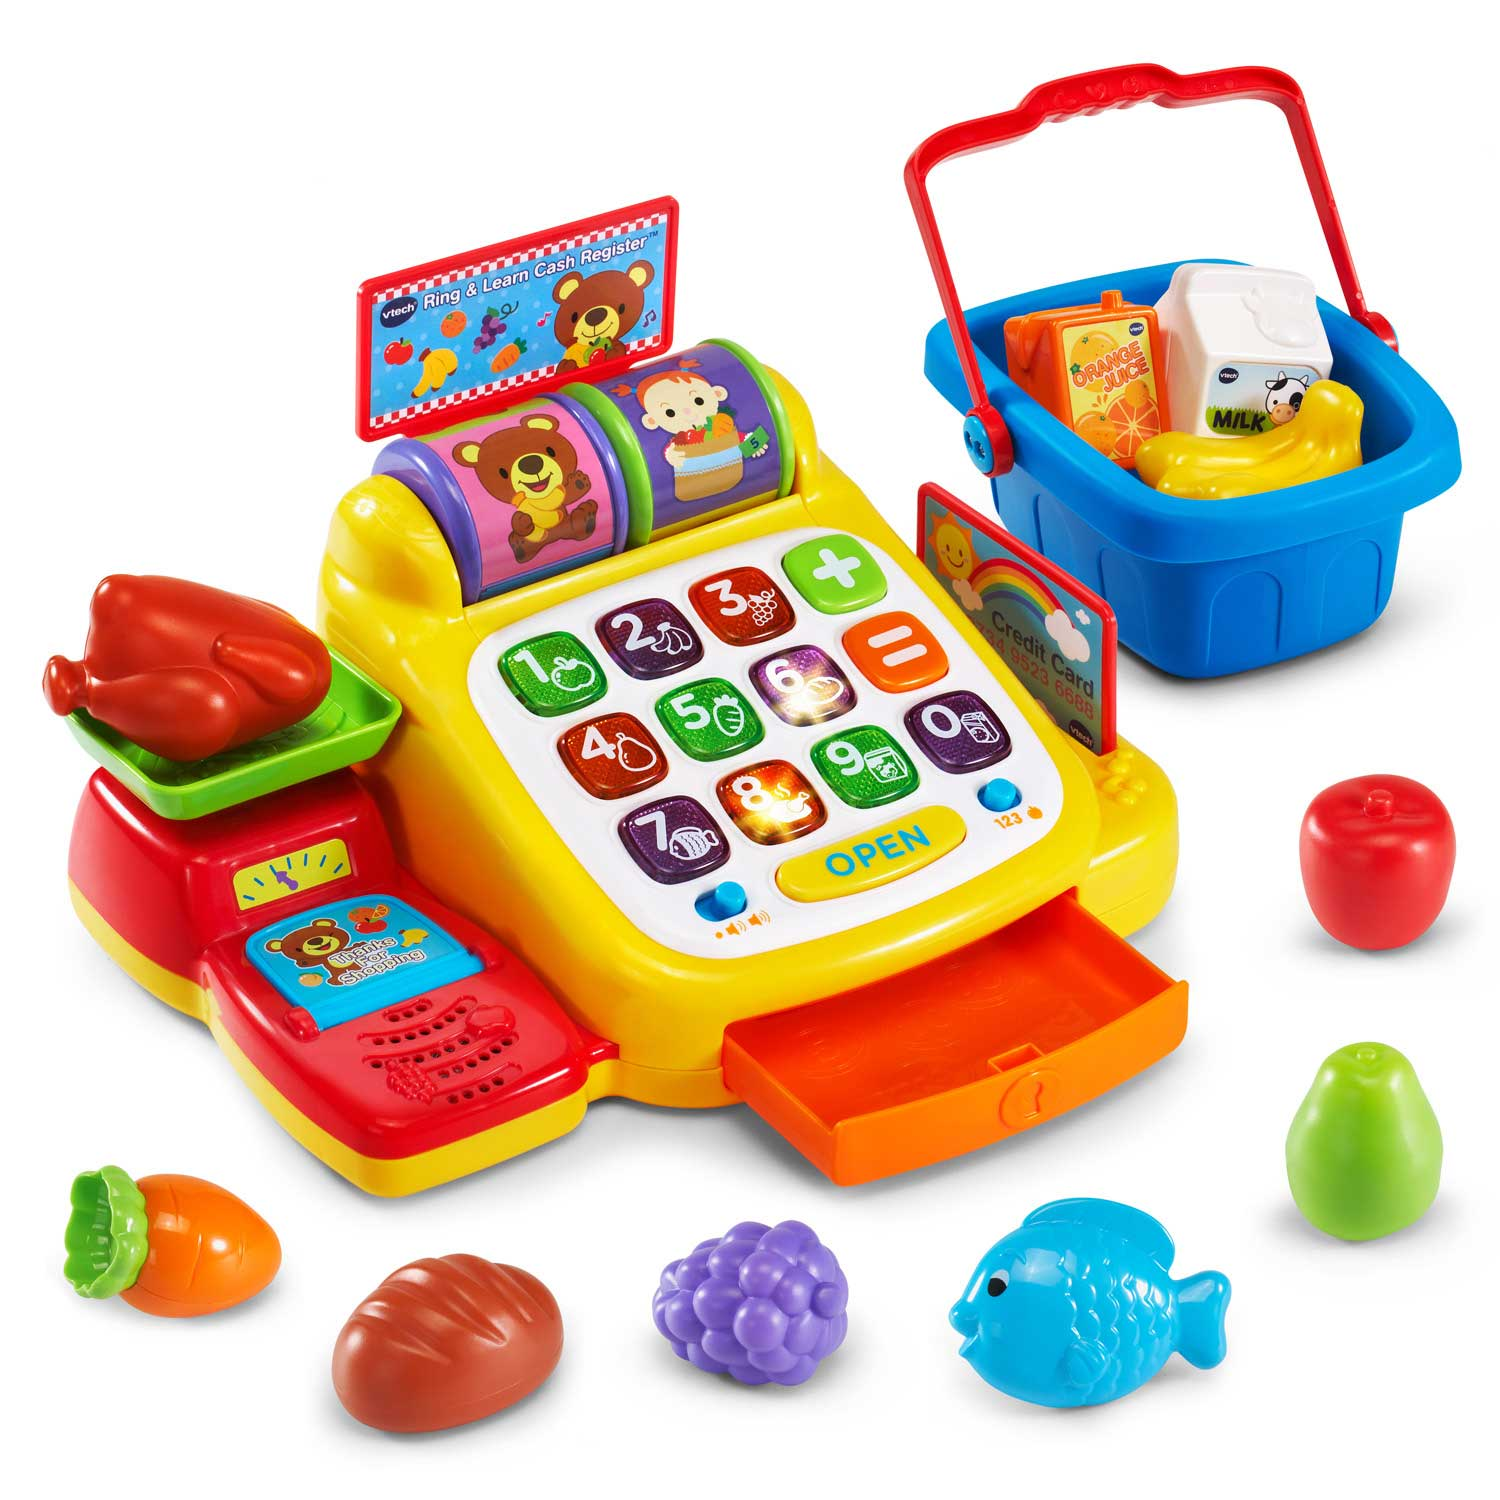 Vtech 174 Adds Exciting New Products To Award Winning Baby